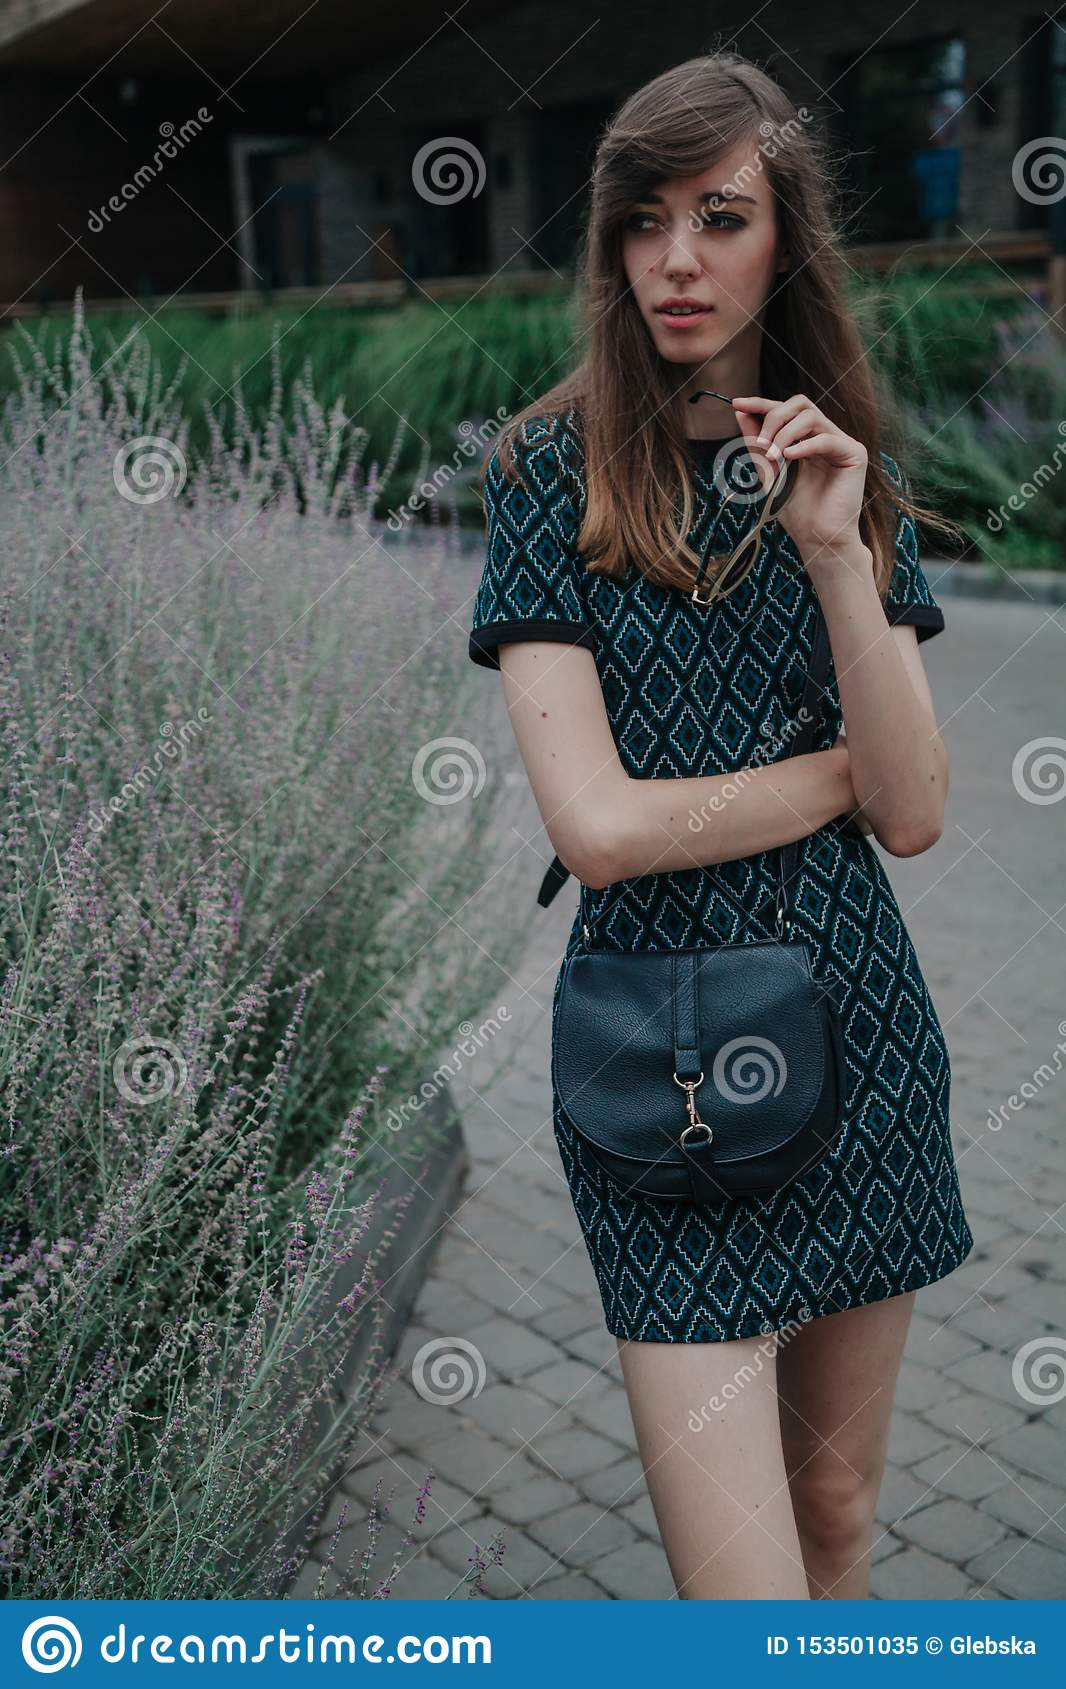 Portrait Of Slim Tall Girl In Green Dress Stock Image - Image of ...